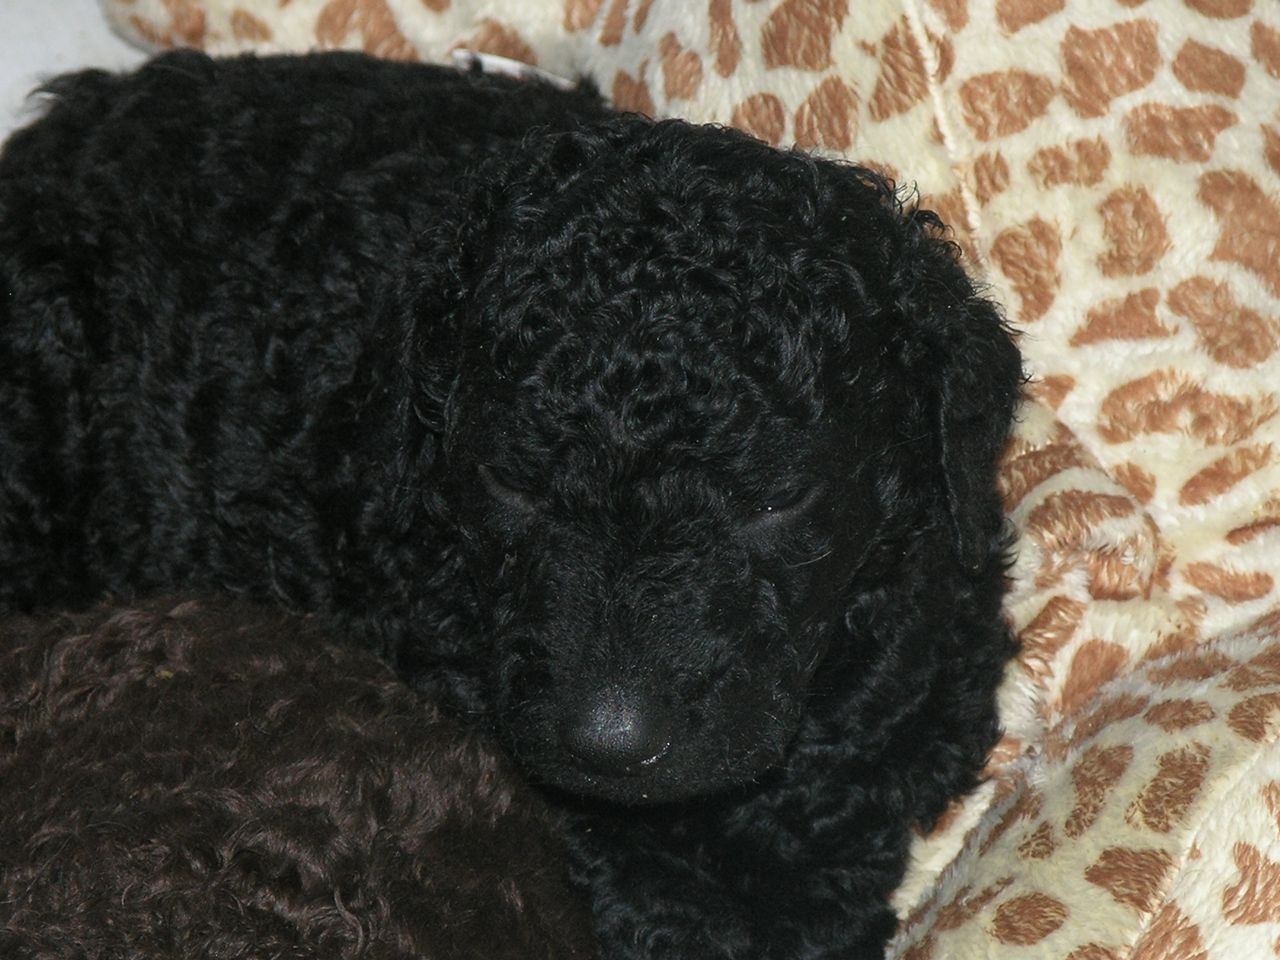 Curly Coated Retriever Puppies: Curly Curly Coated Retriever Puppies For Sale Derby Breed